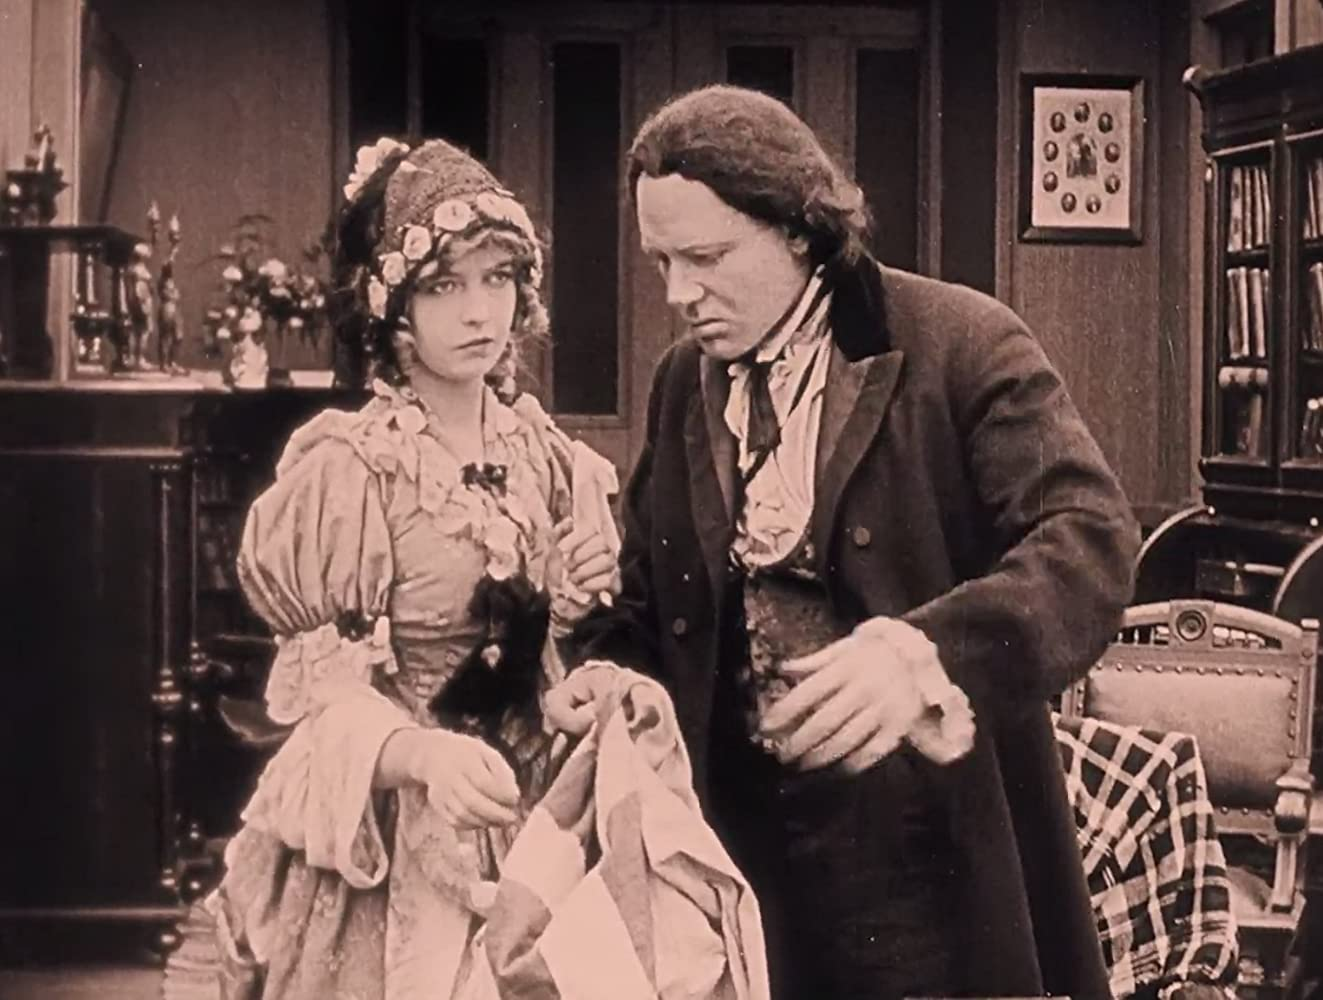 Lillian Gish and Ralph Lewis in The Birth of a Nation (1915)